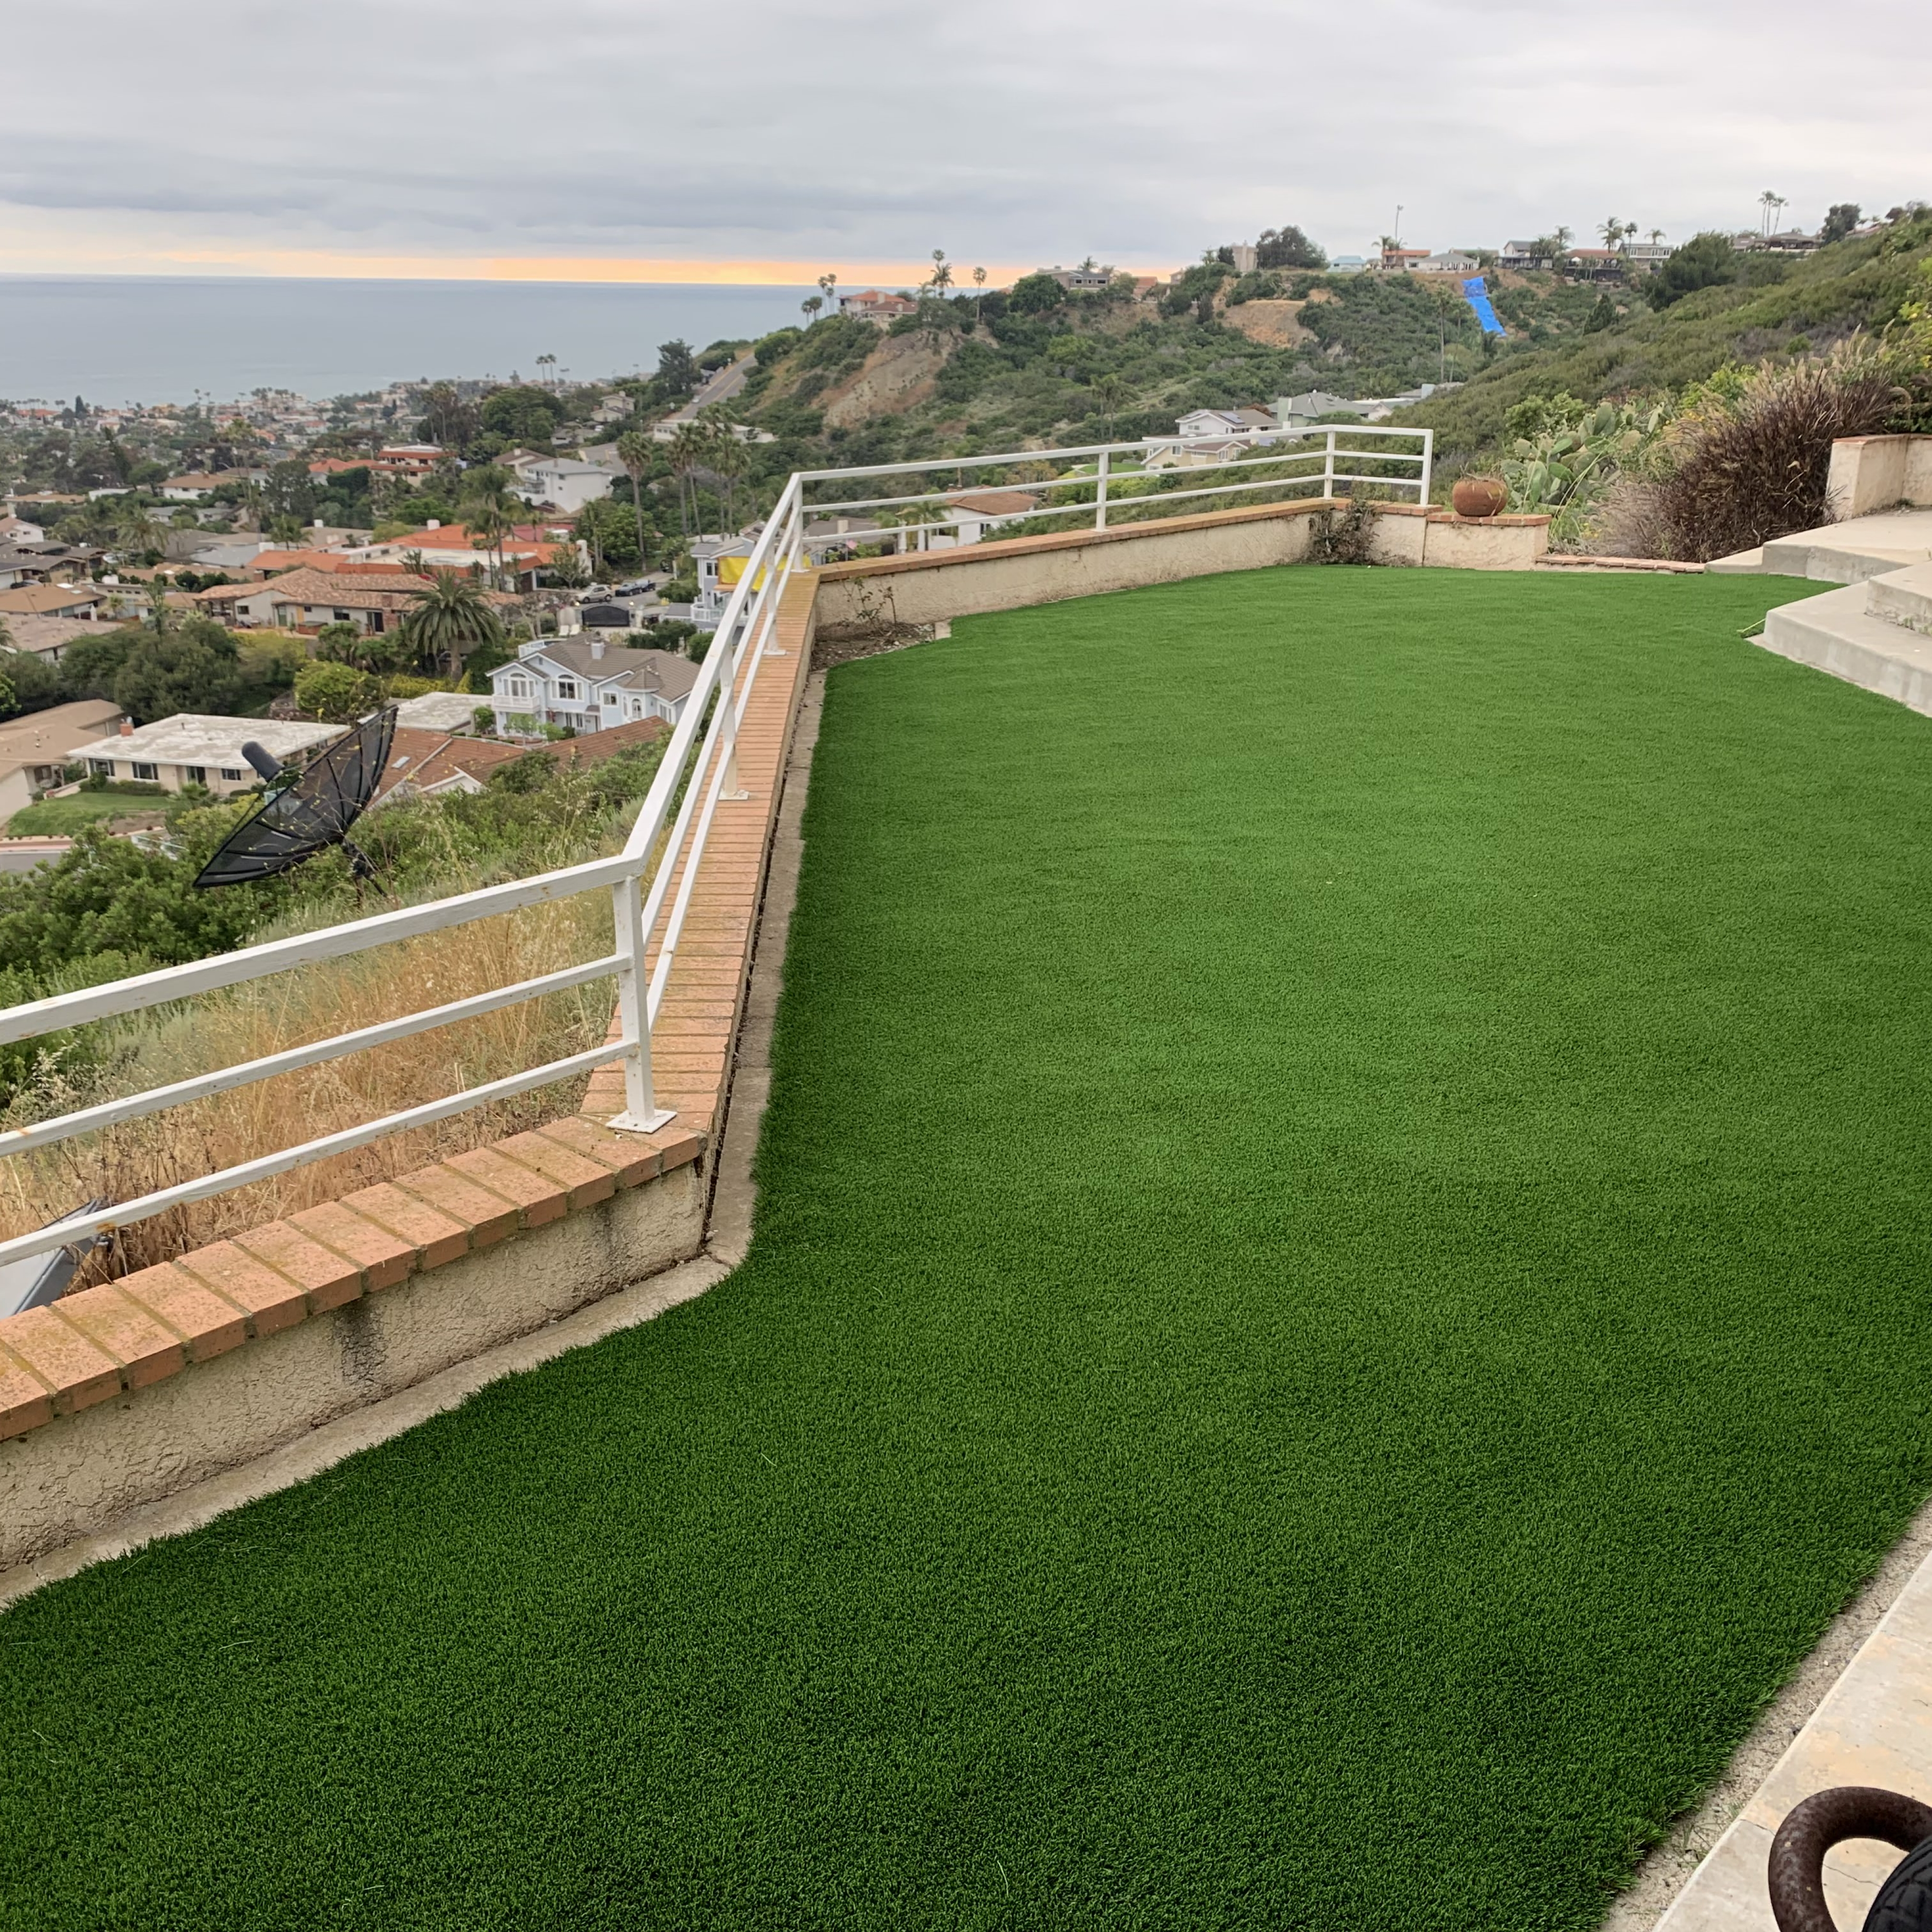 Cool Blue Hollow Lime fake green grass,green grass carpet,fake green grass,green grass carpet,artificial turf,synthetic turf,artificial turf installation,how to install artificial turf,used artificial turf